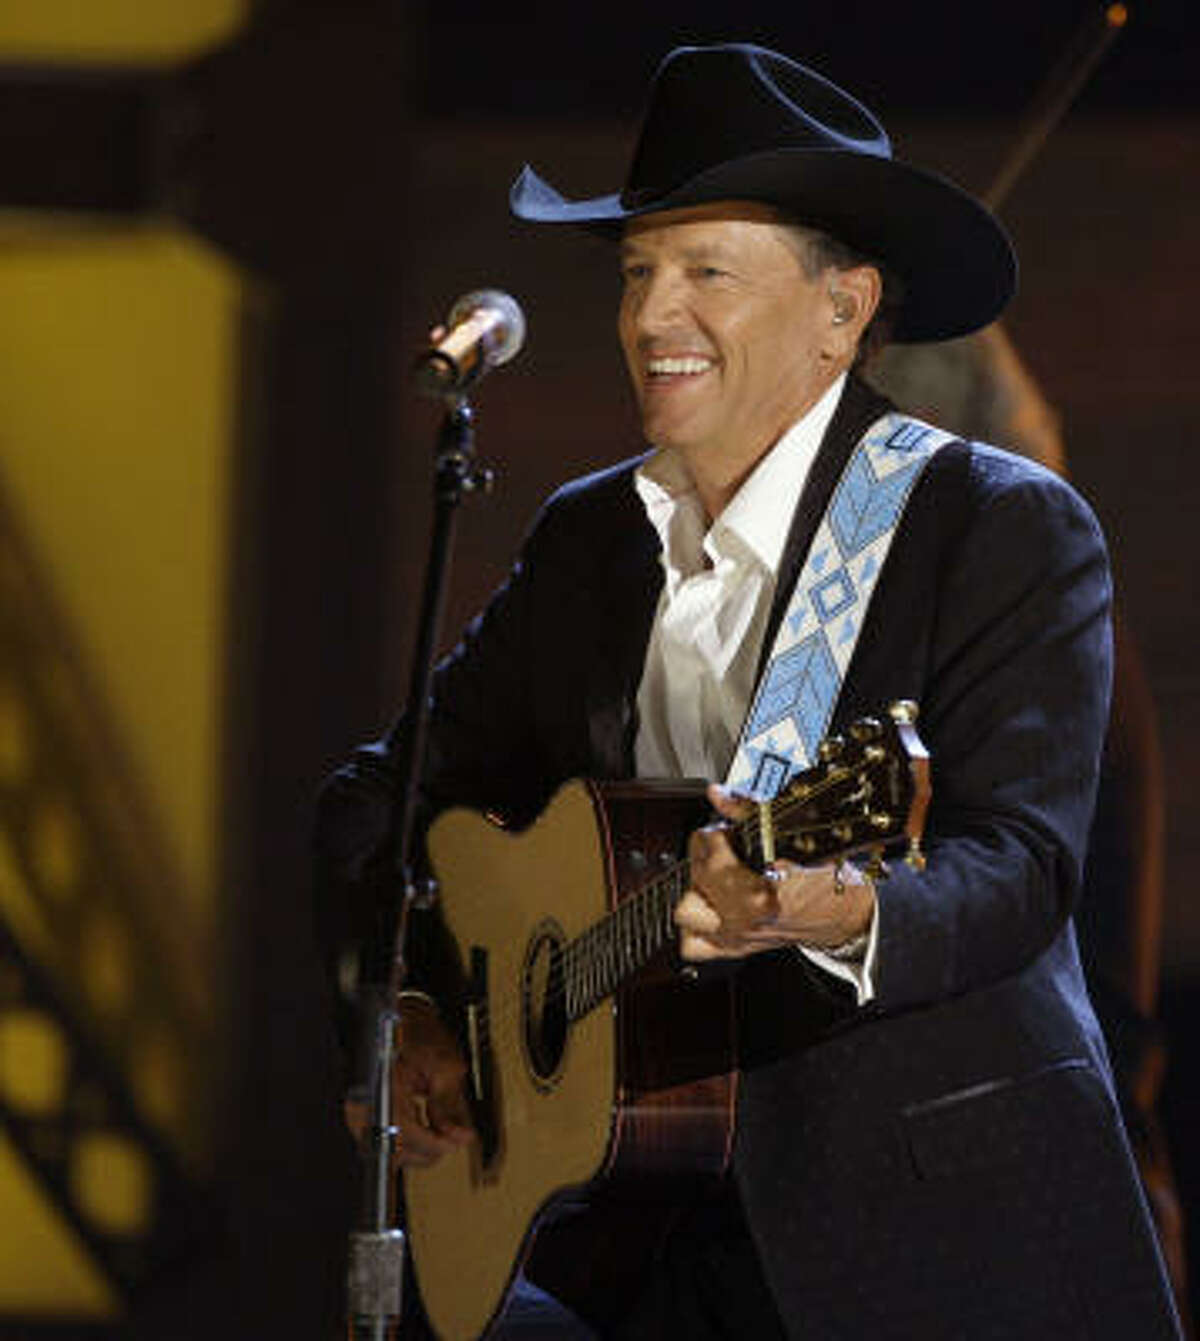 George Strait's new CD, Twang, will be released Tuesday.